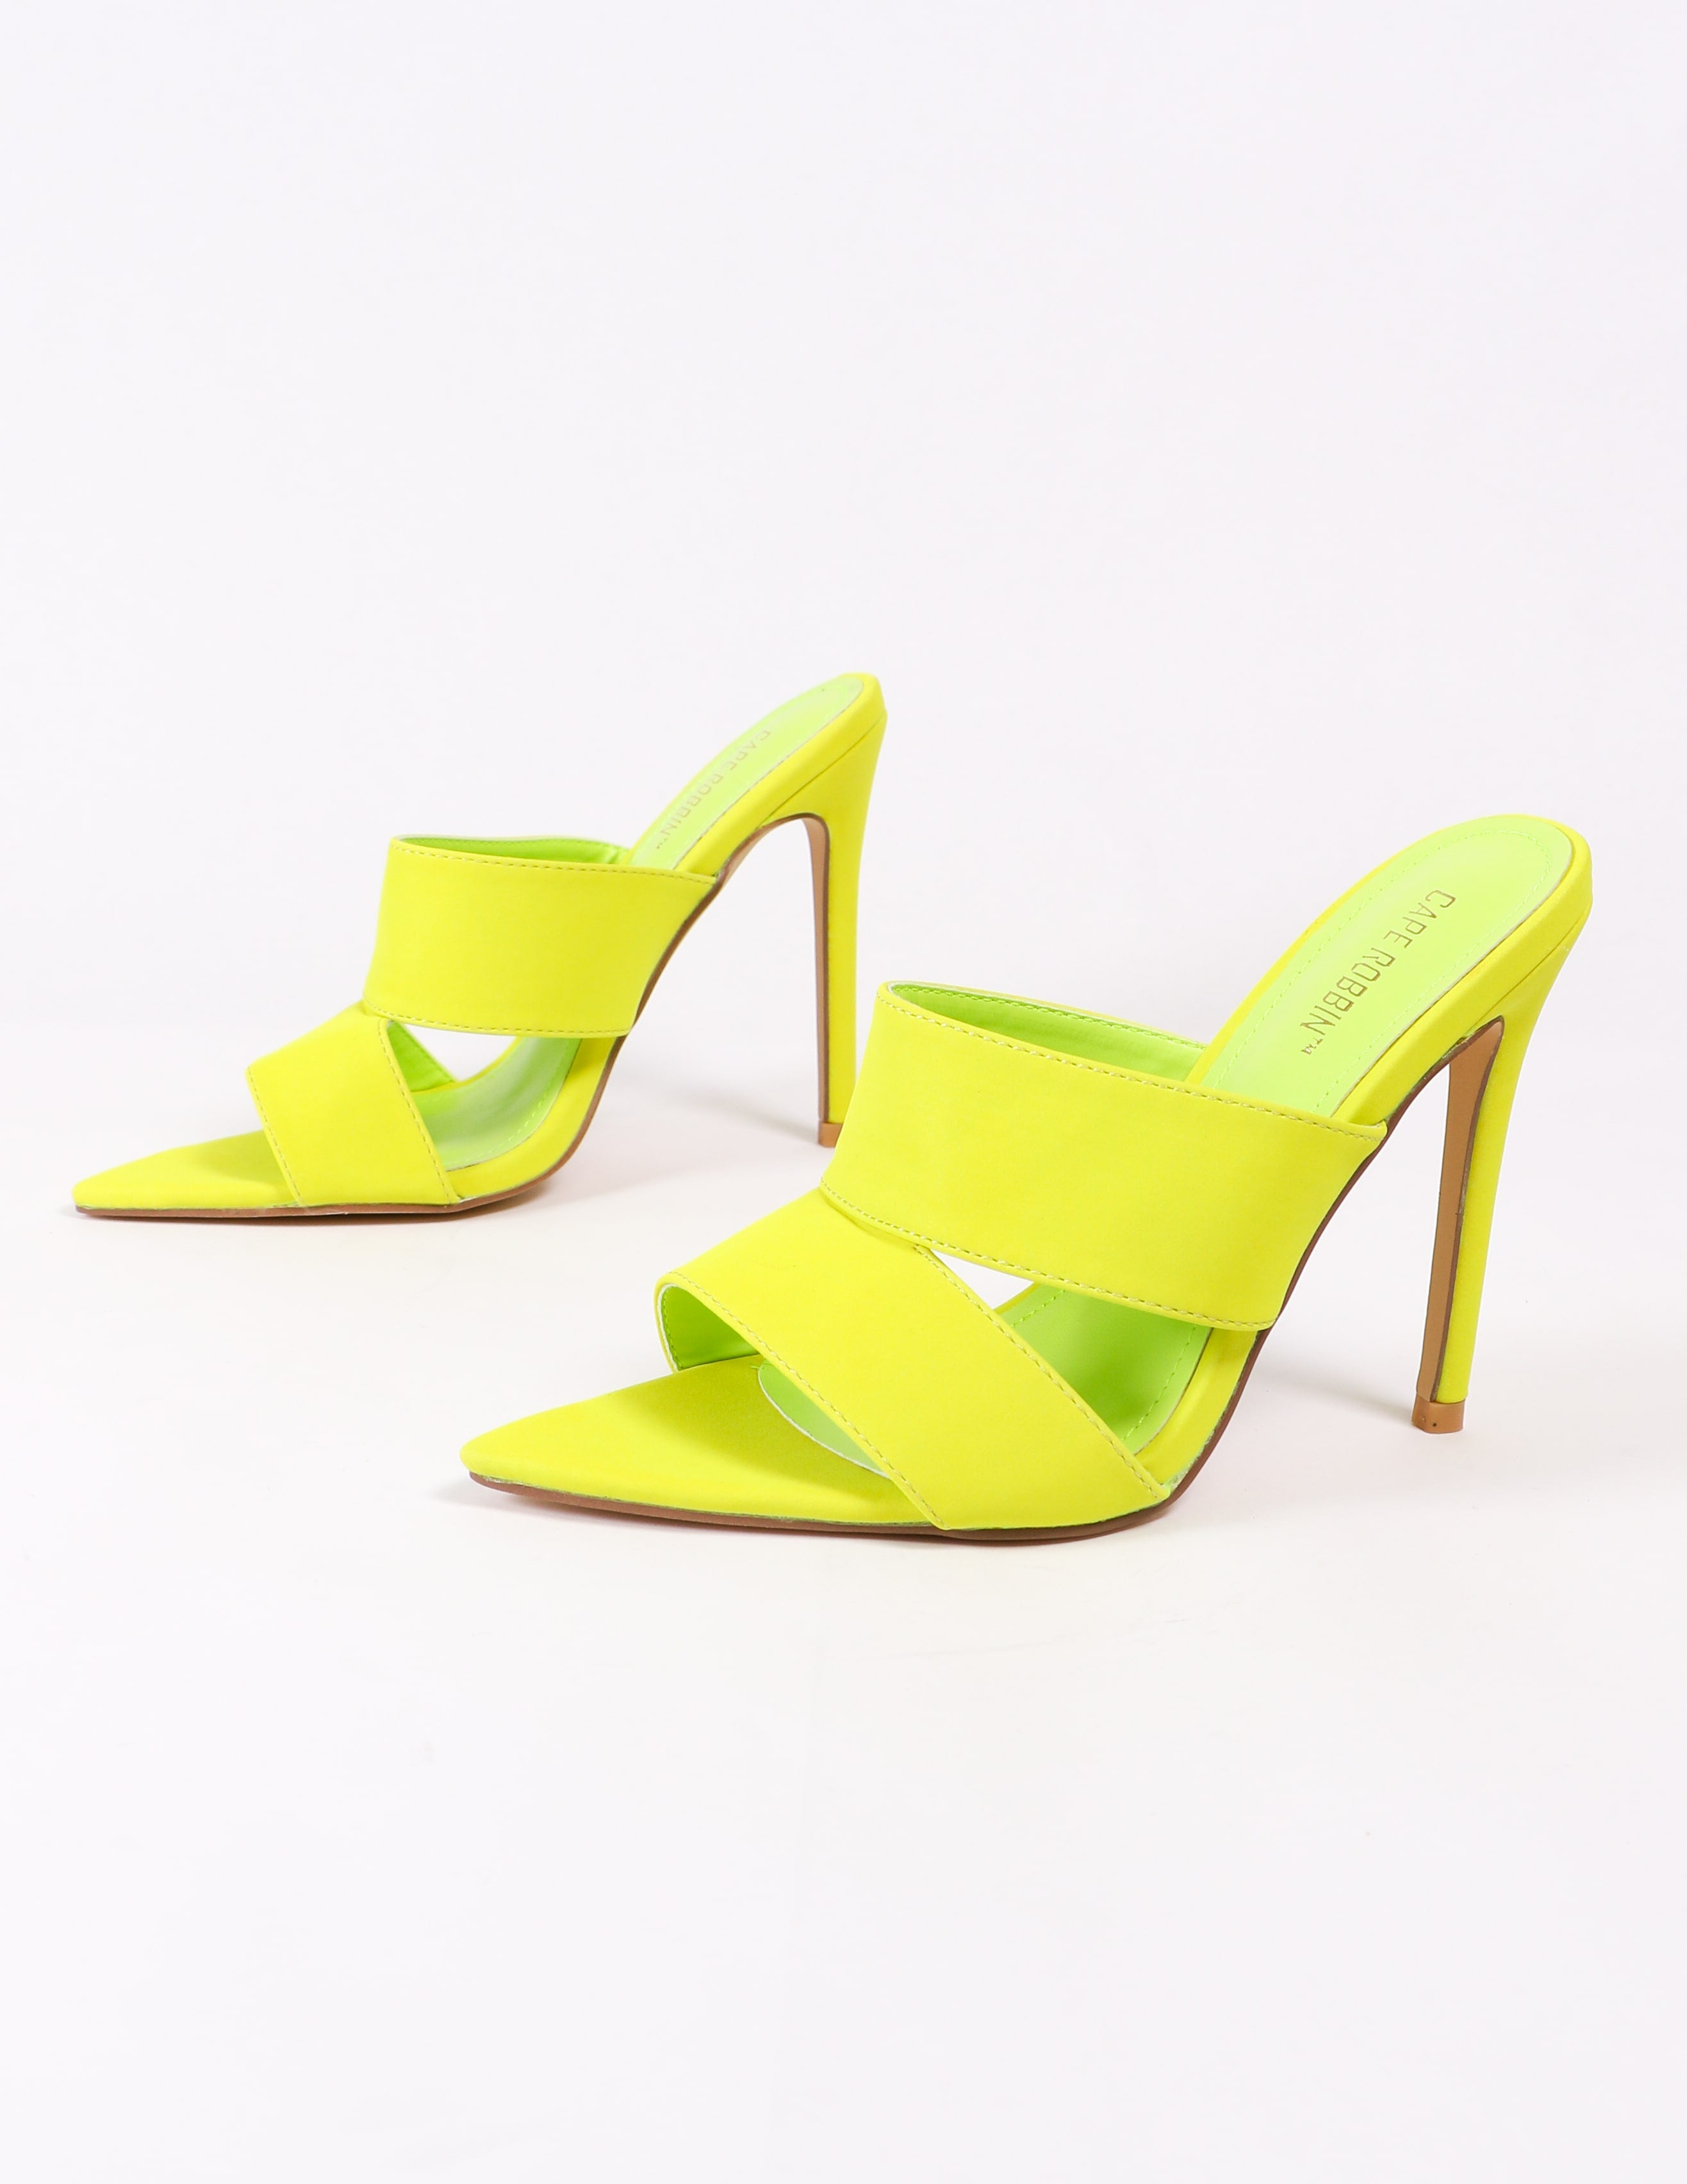 lime green heels on white background - elle bleu shoes